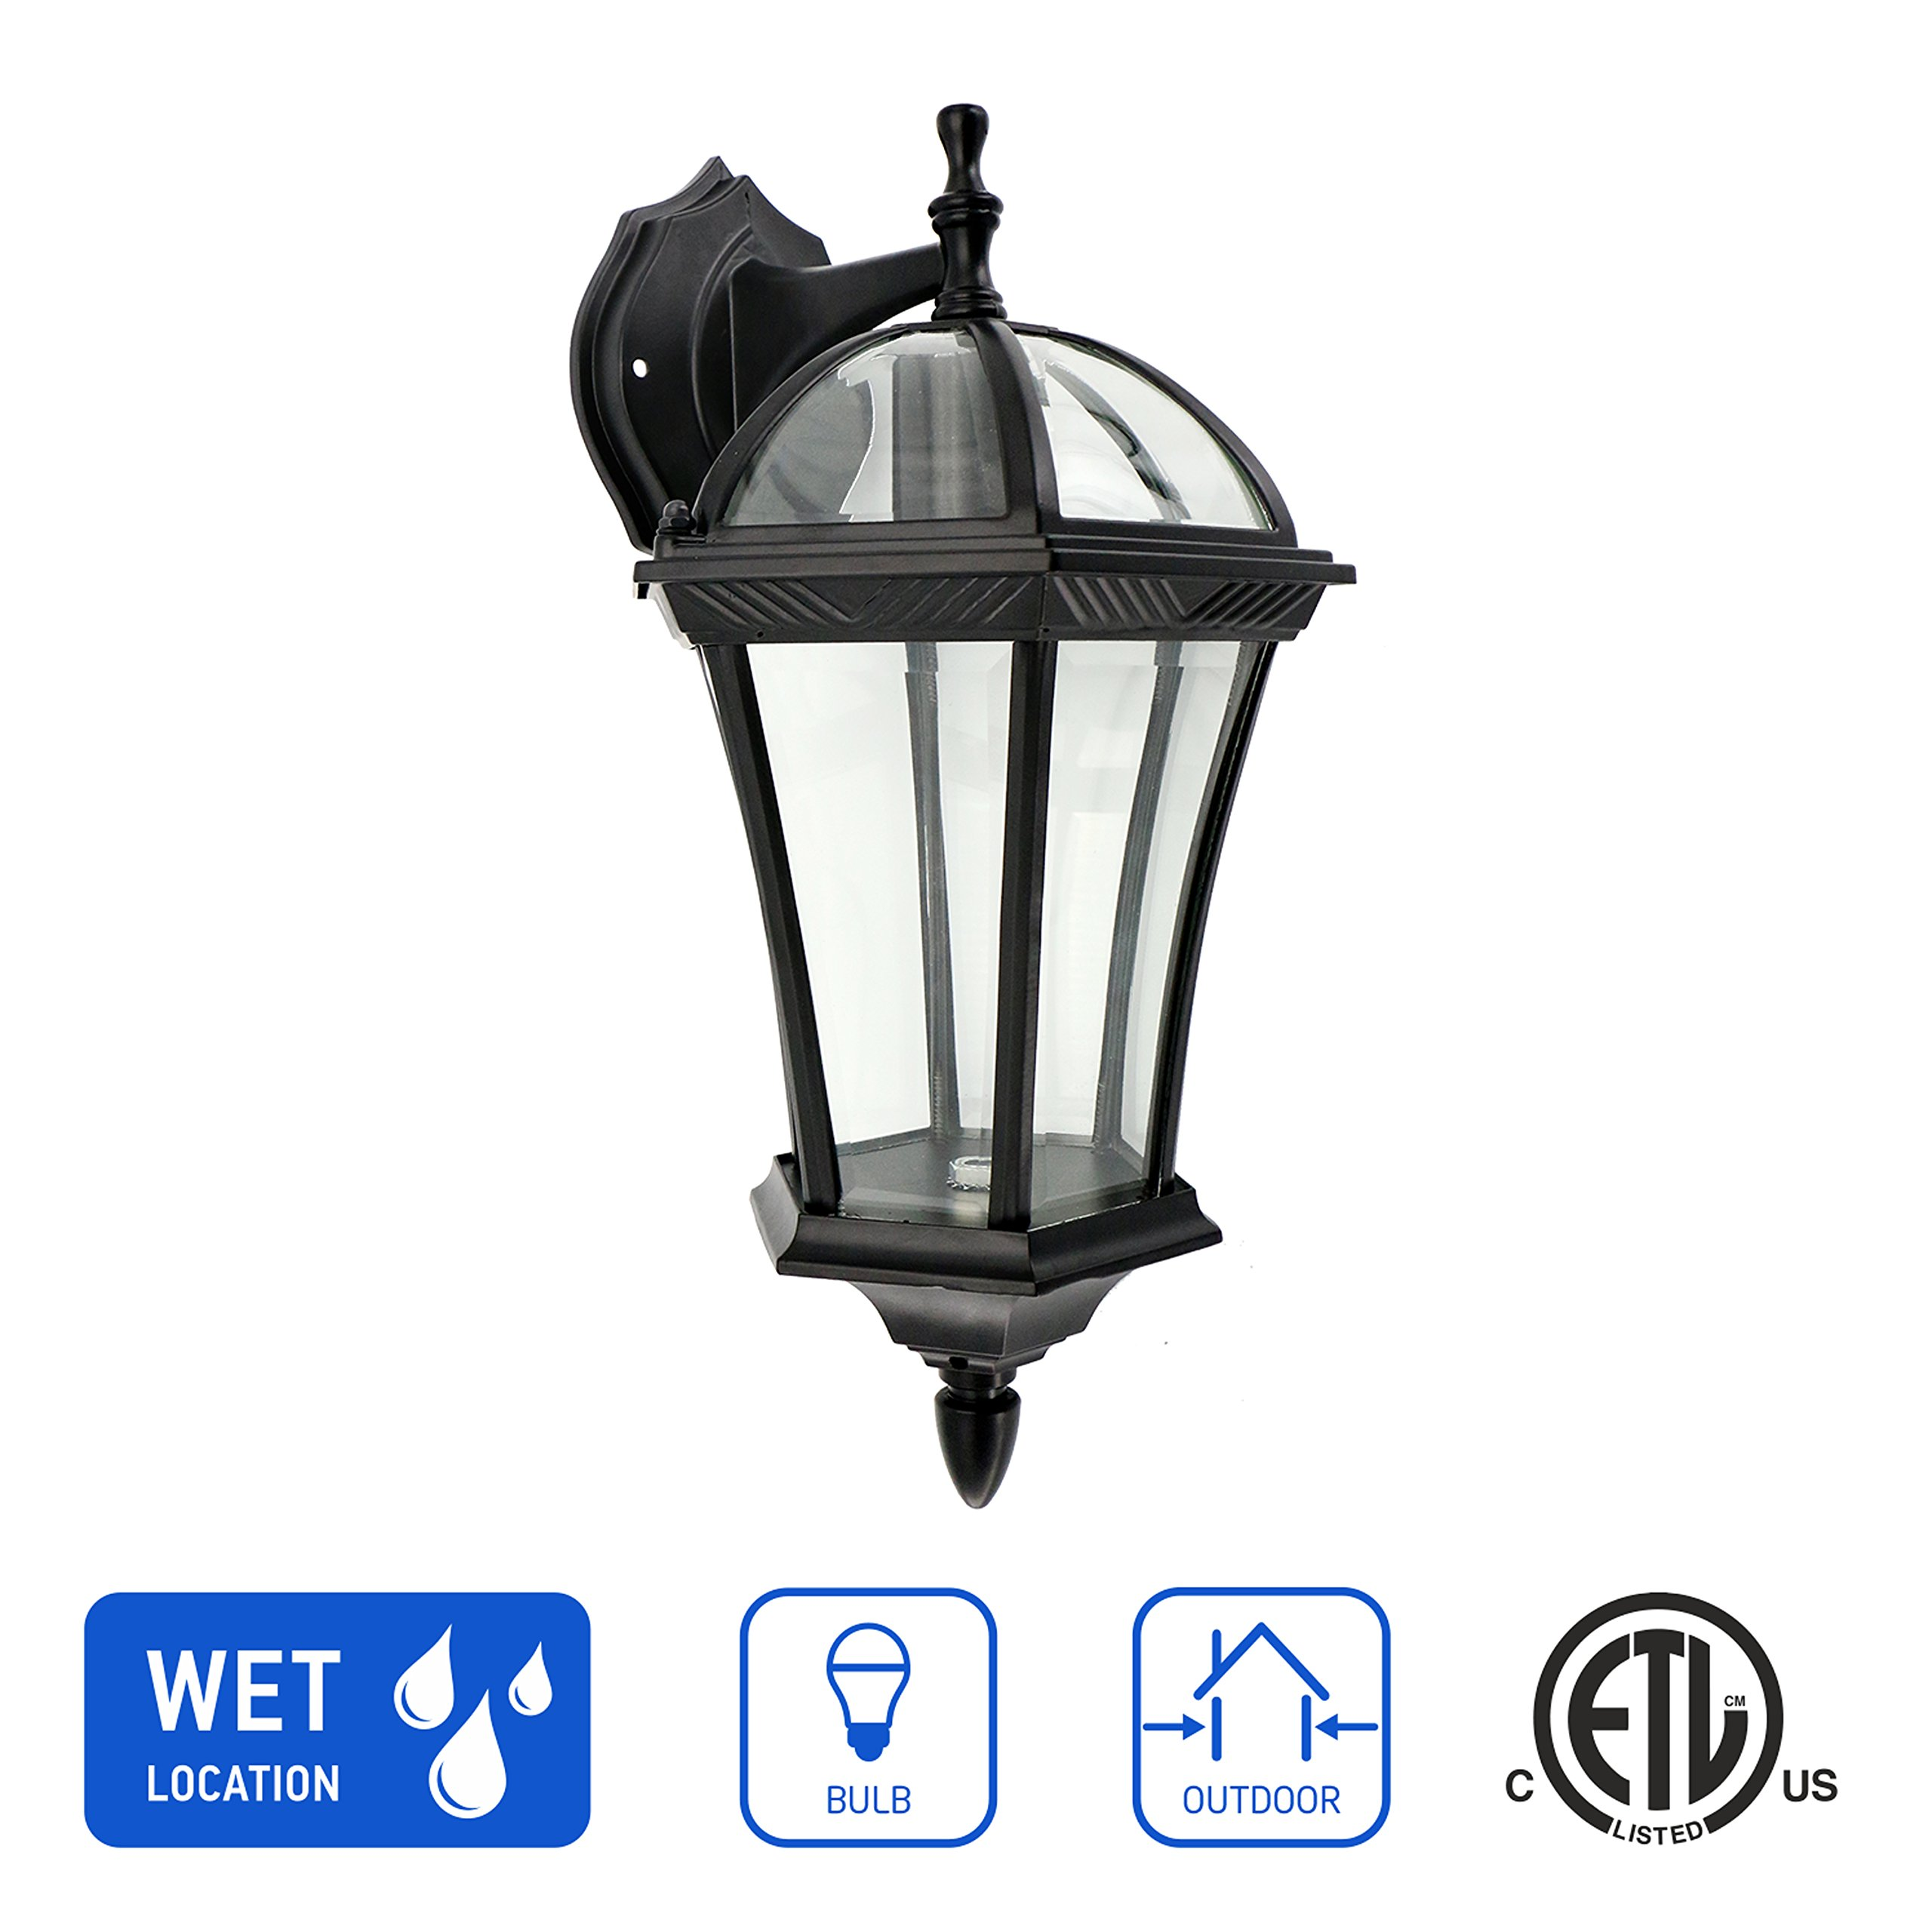 in Home 1-Light Outdoor Wall Mount Lantern Downward Fixture L06 Series Traditional Design Black Finish, Clear Glass Shade, ETL Listed